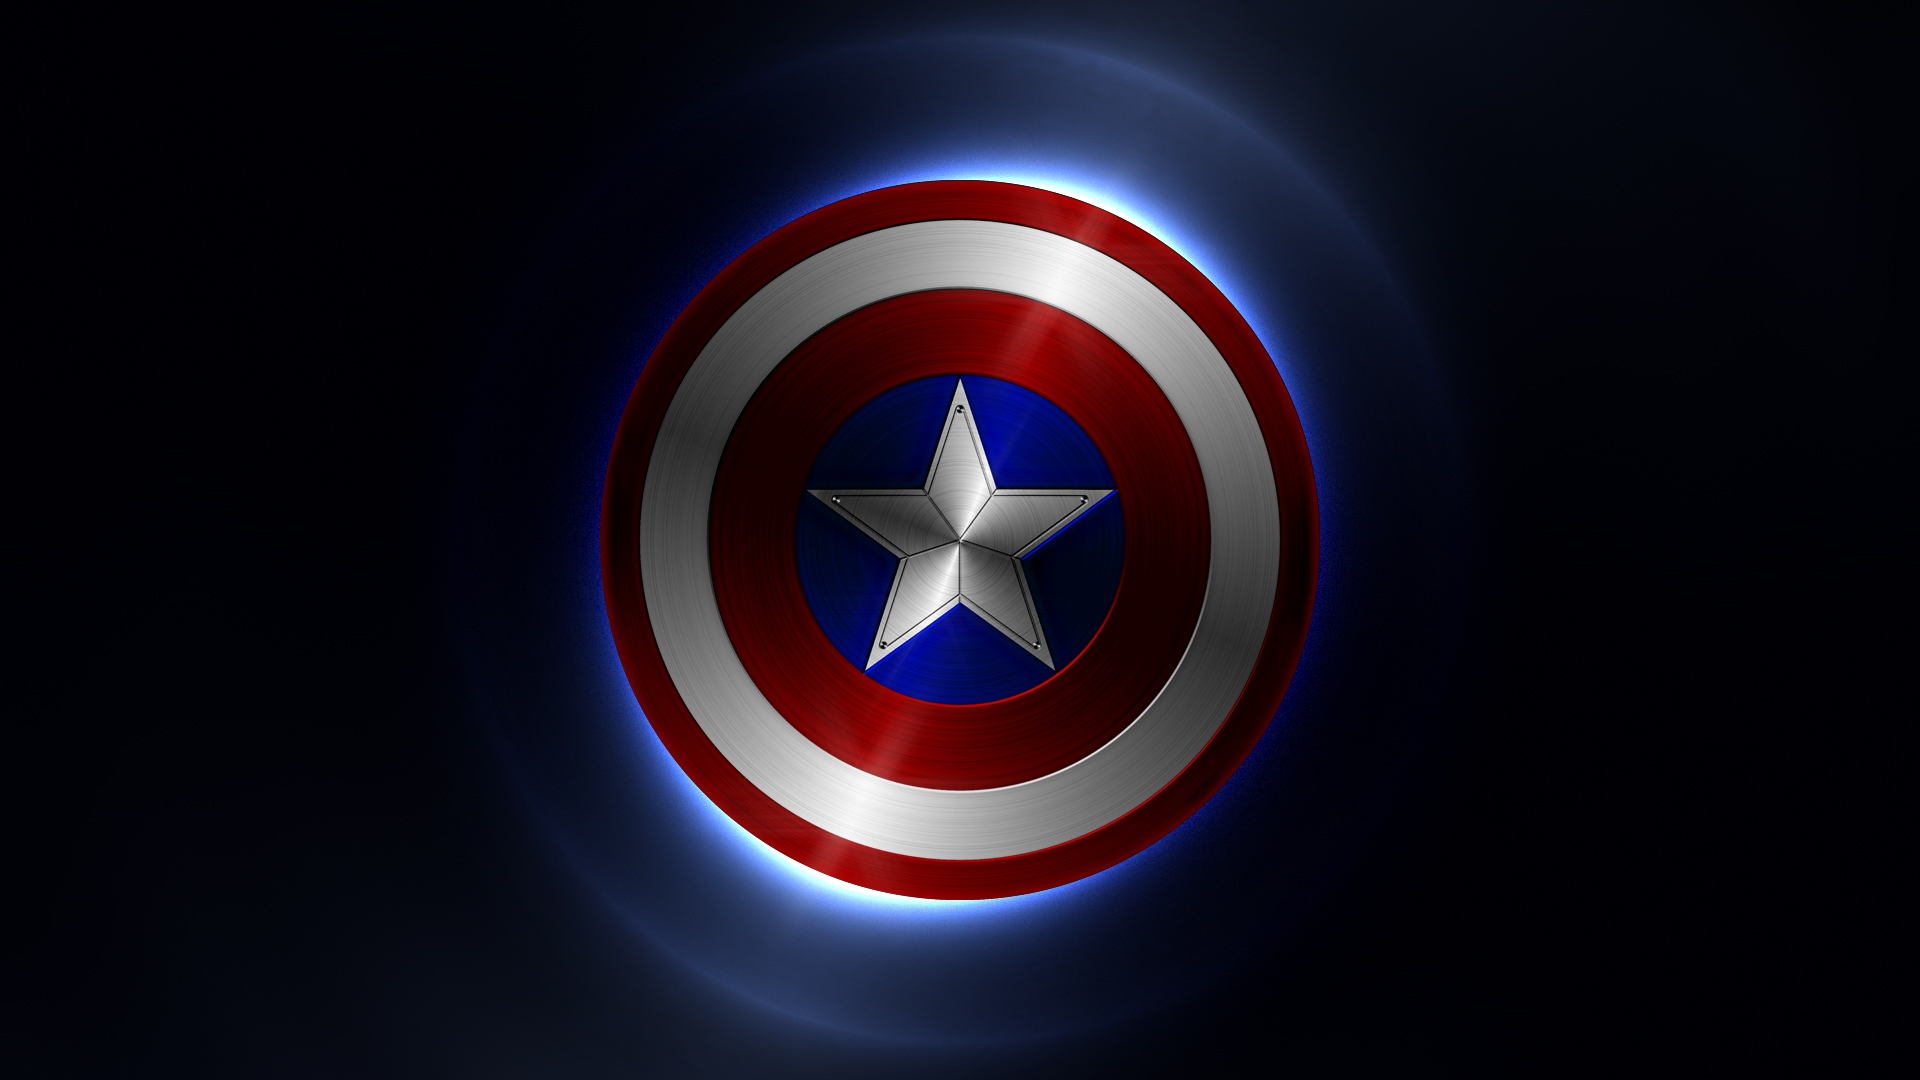 Hd wallpaper of captain america - Hd Wallpaper Of Captain America 6